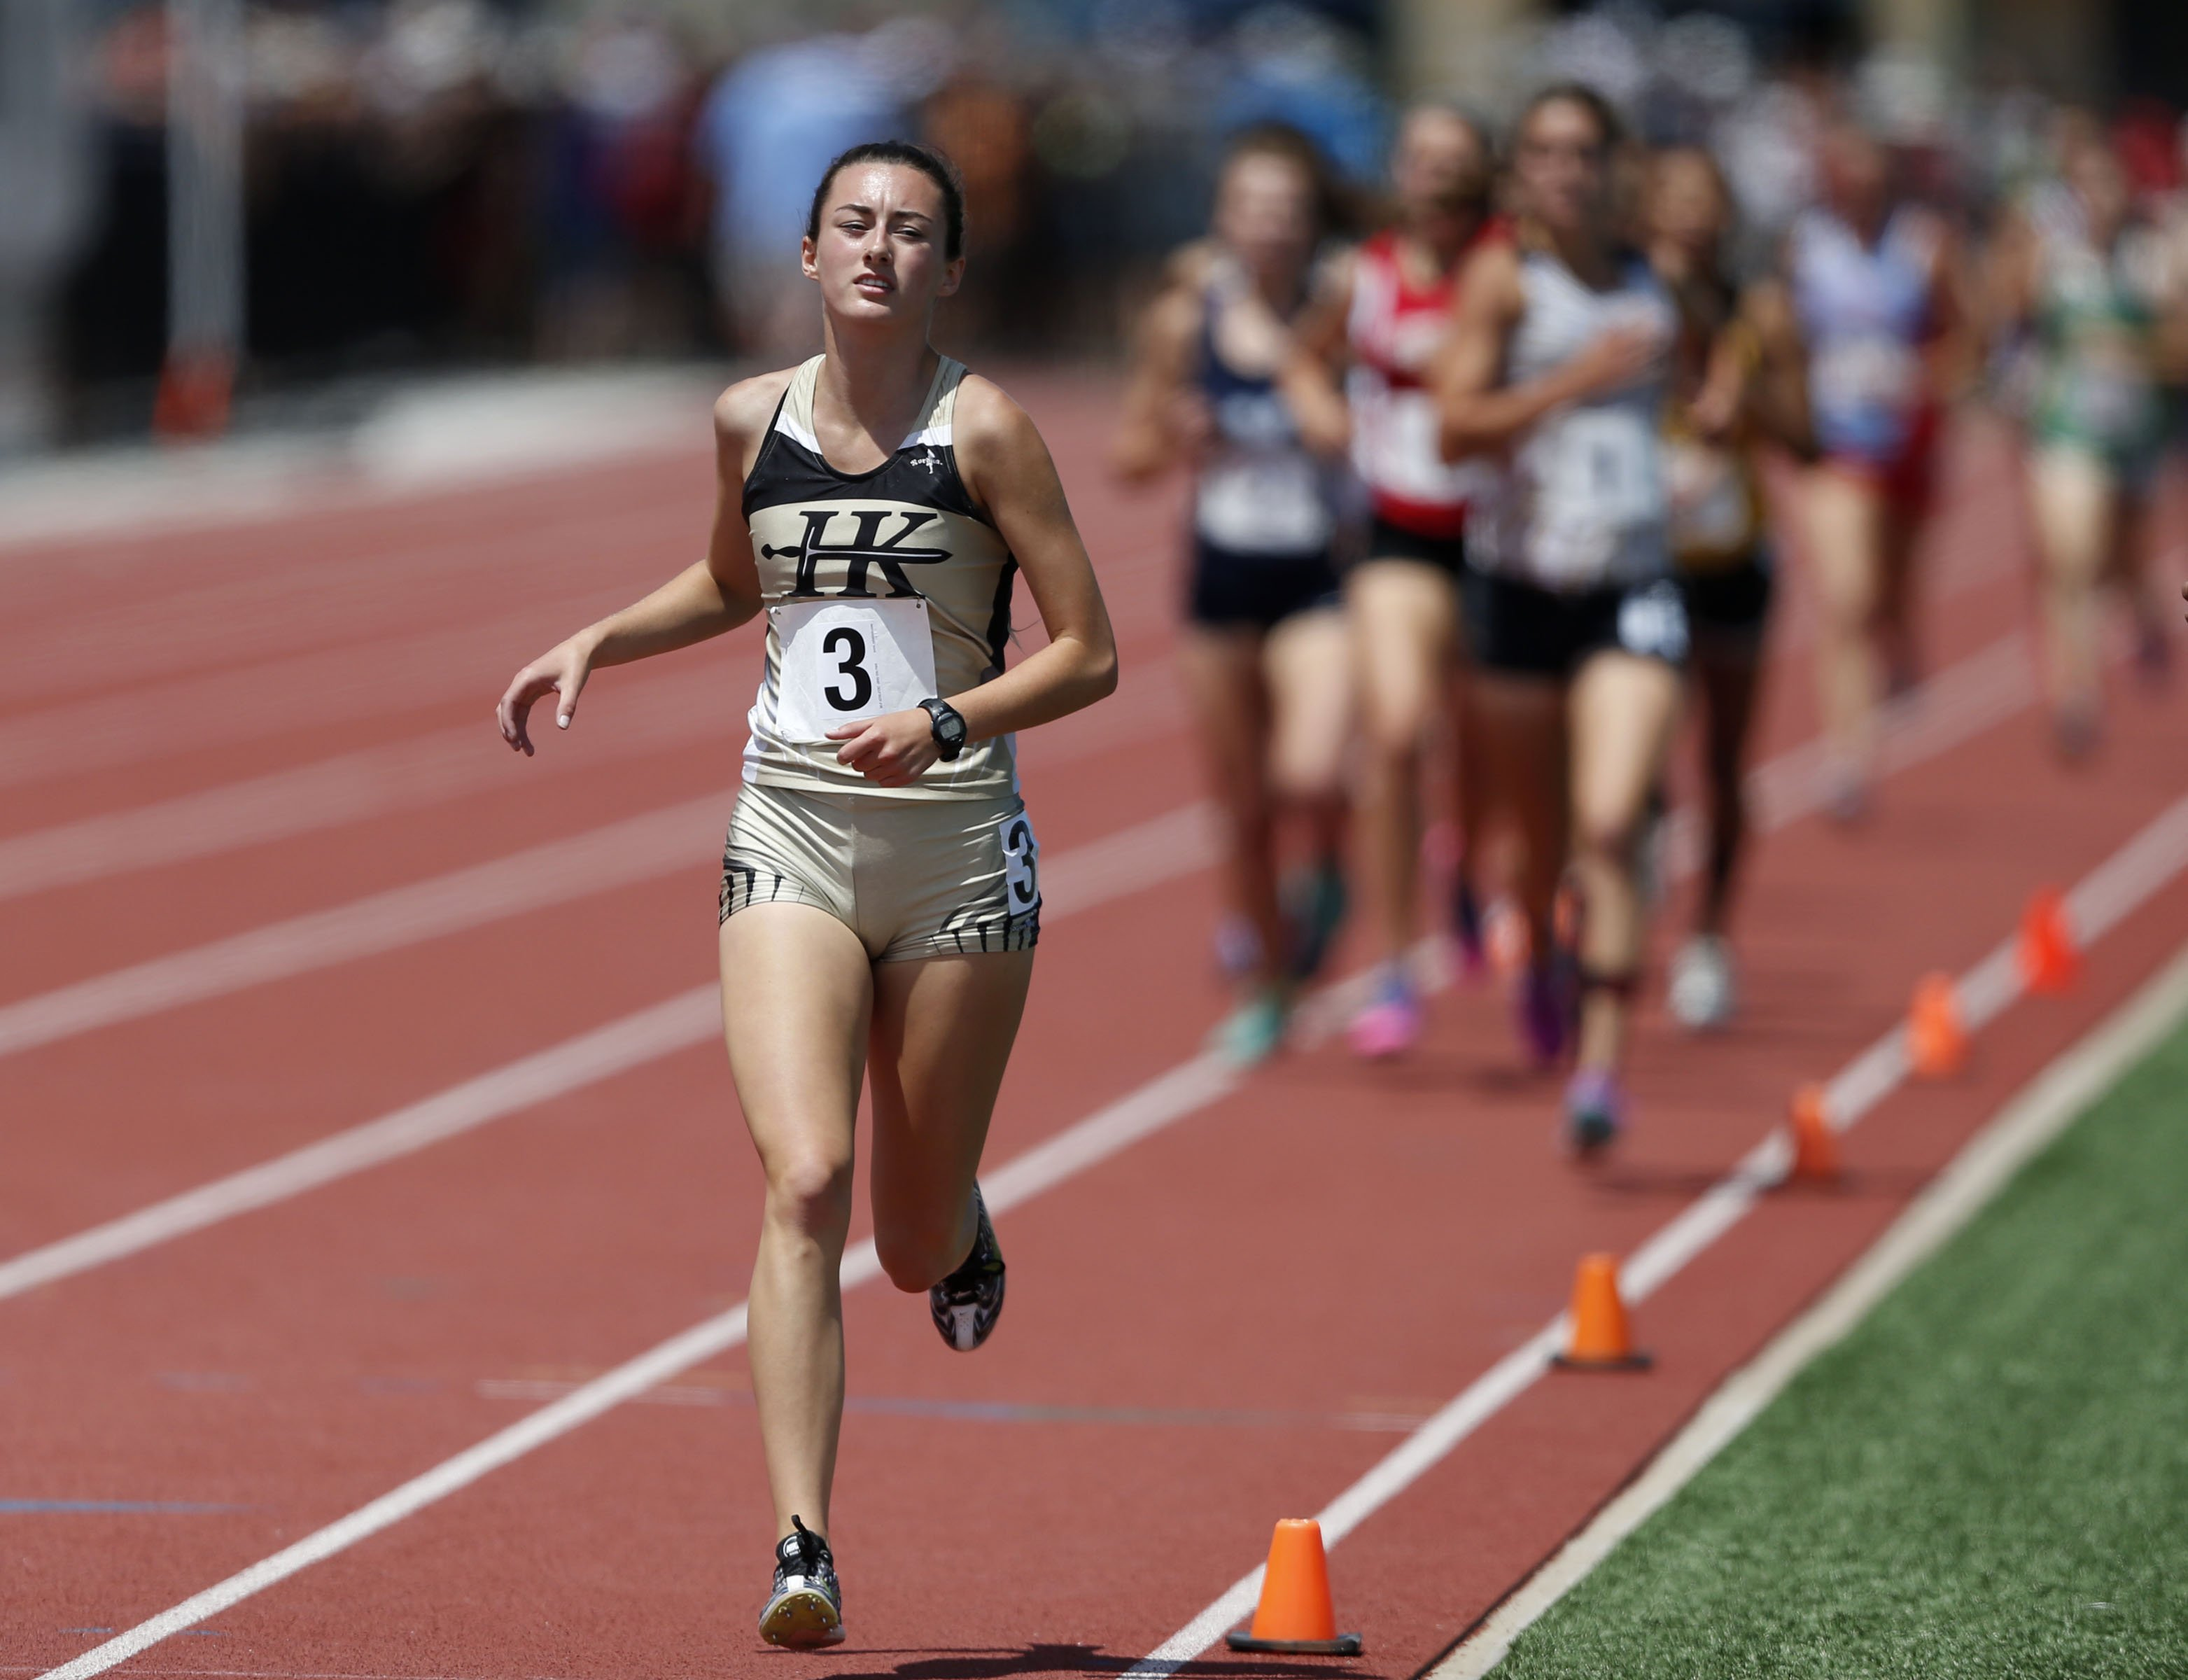 3a state track meet